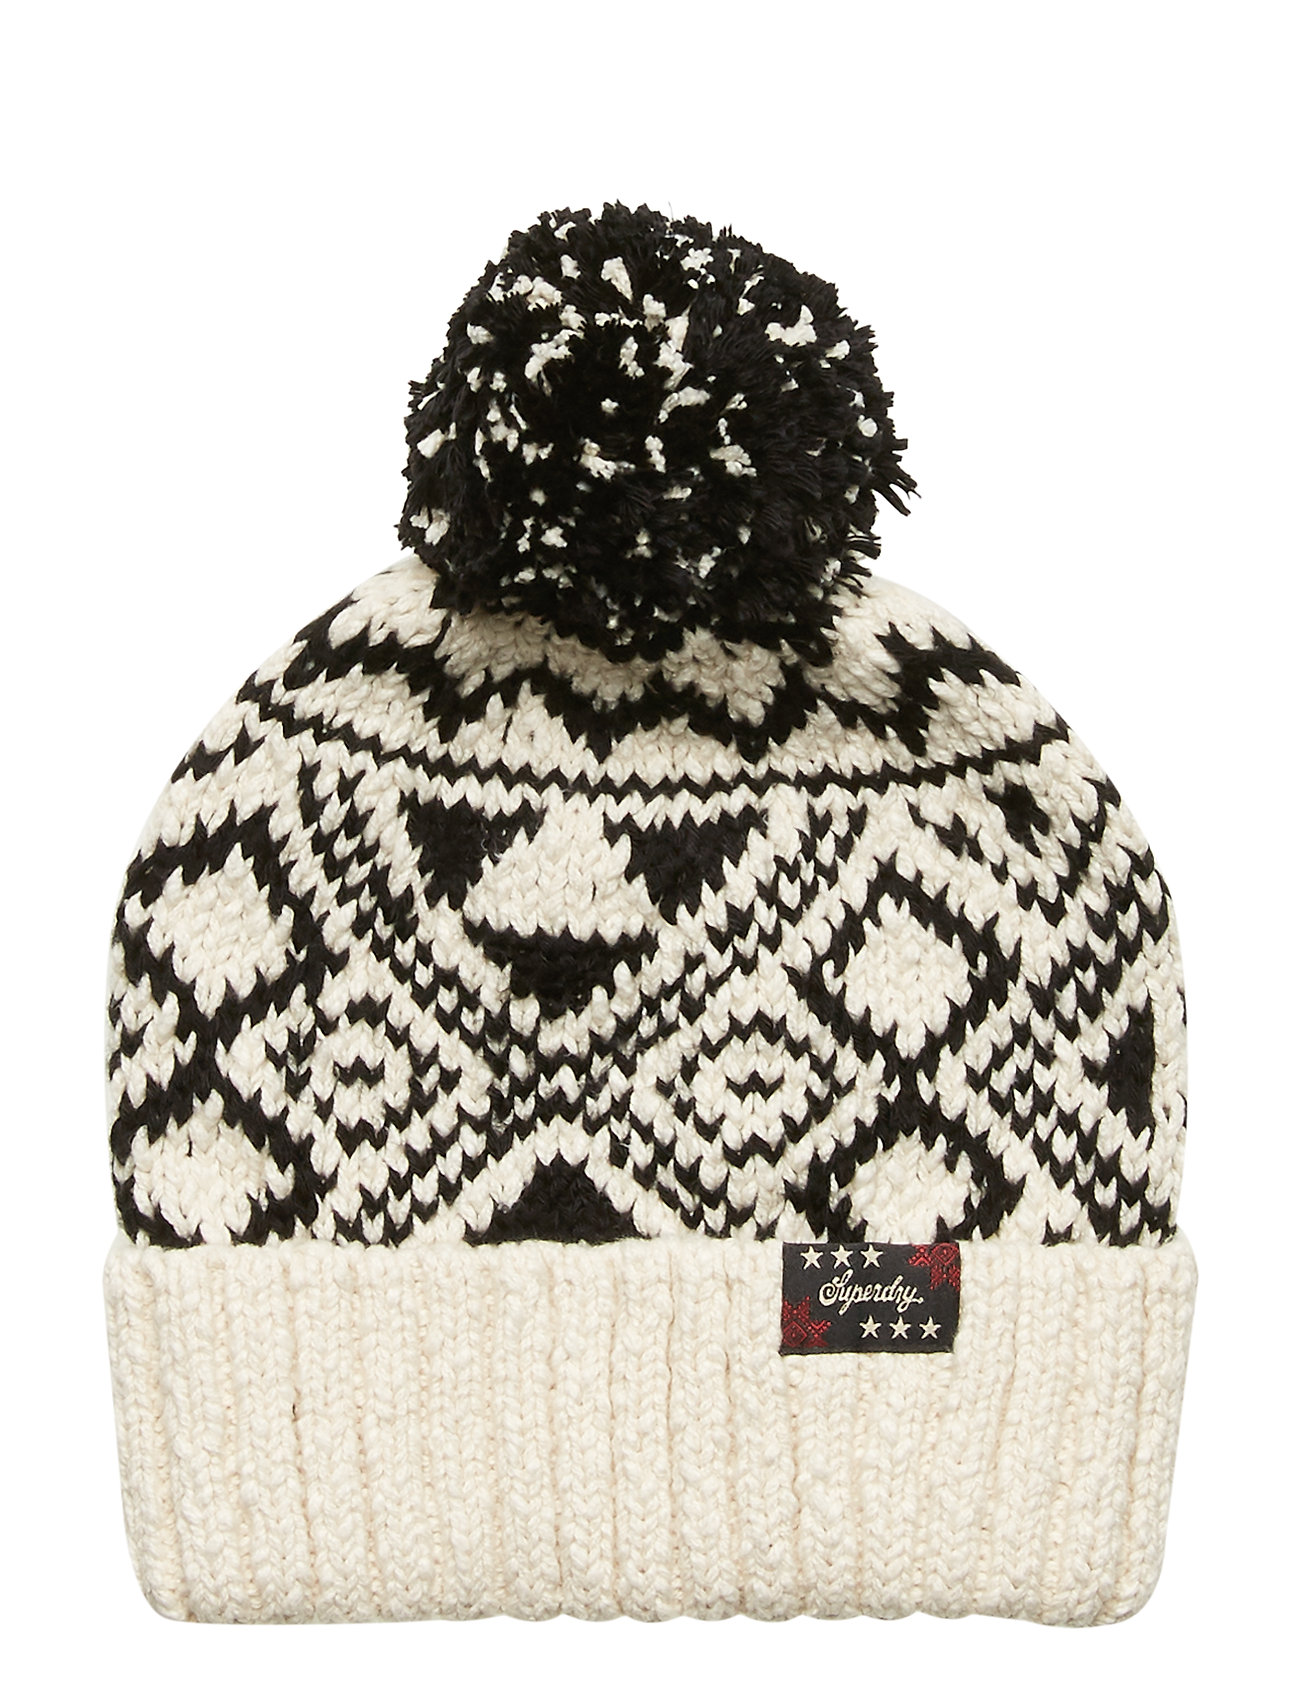 Image of Rodeo West Textred Beanie Accessories Headwear Beanies Creme Superdry (3528662433)